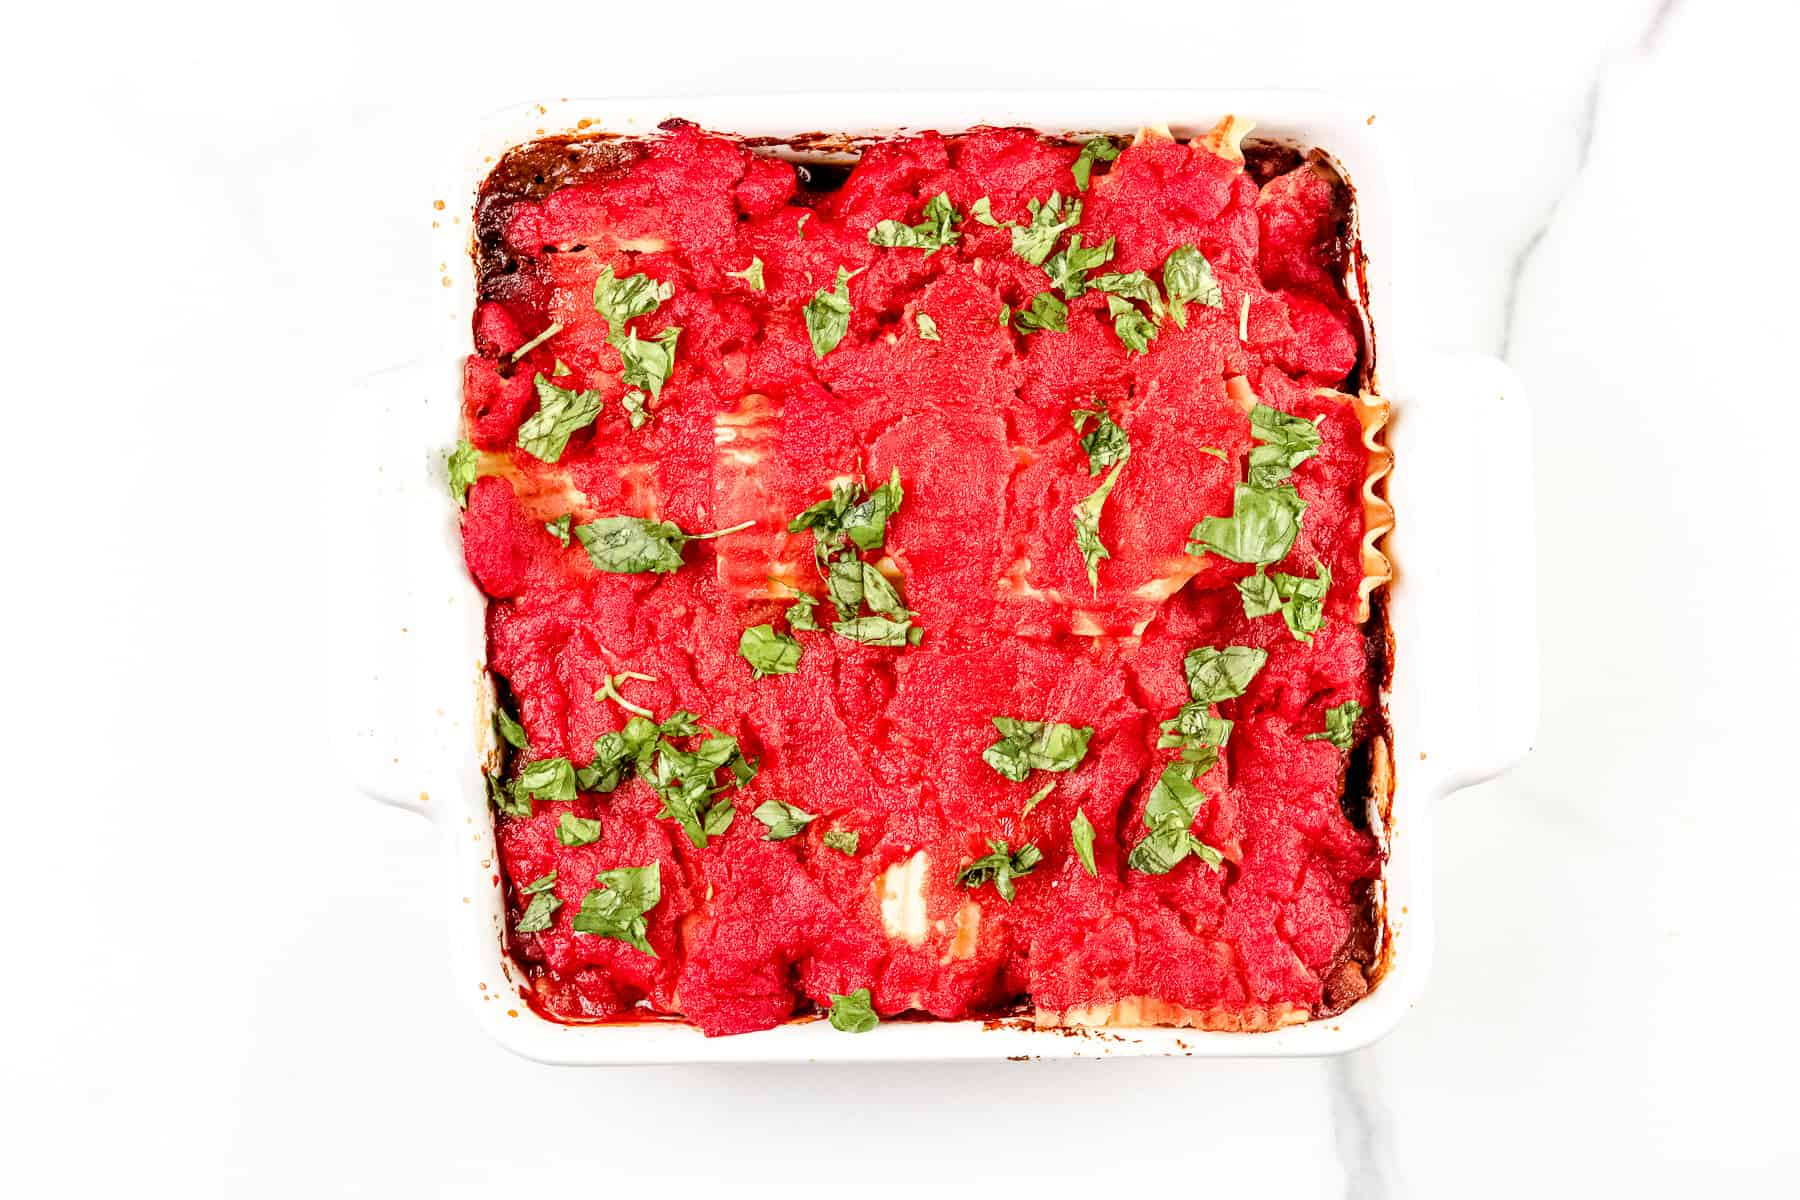 Image of finished dairy free lasagna.